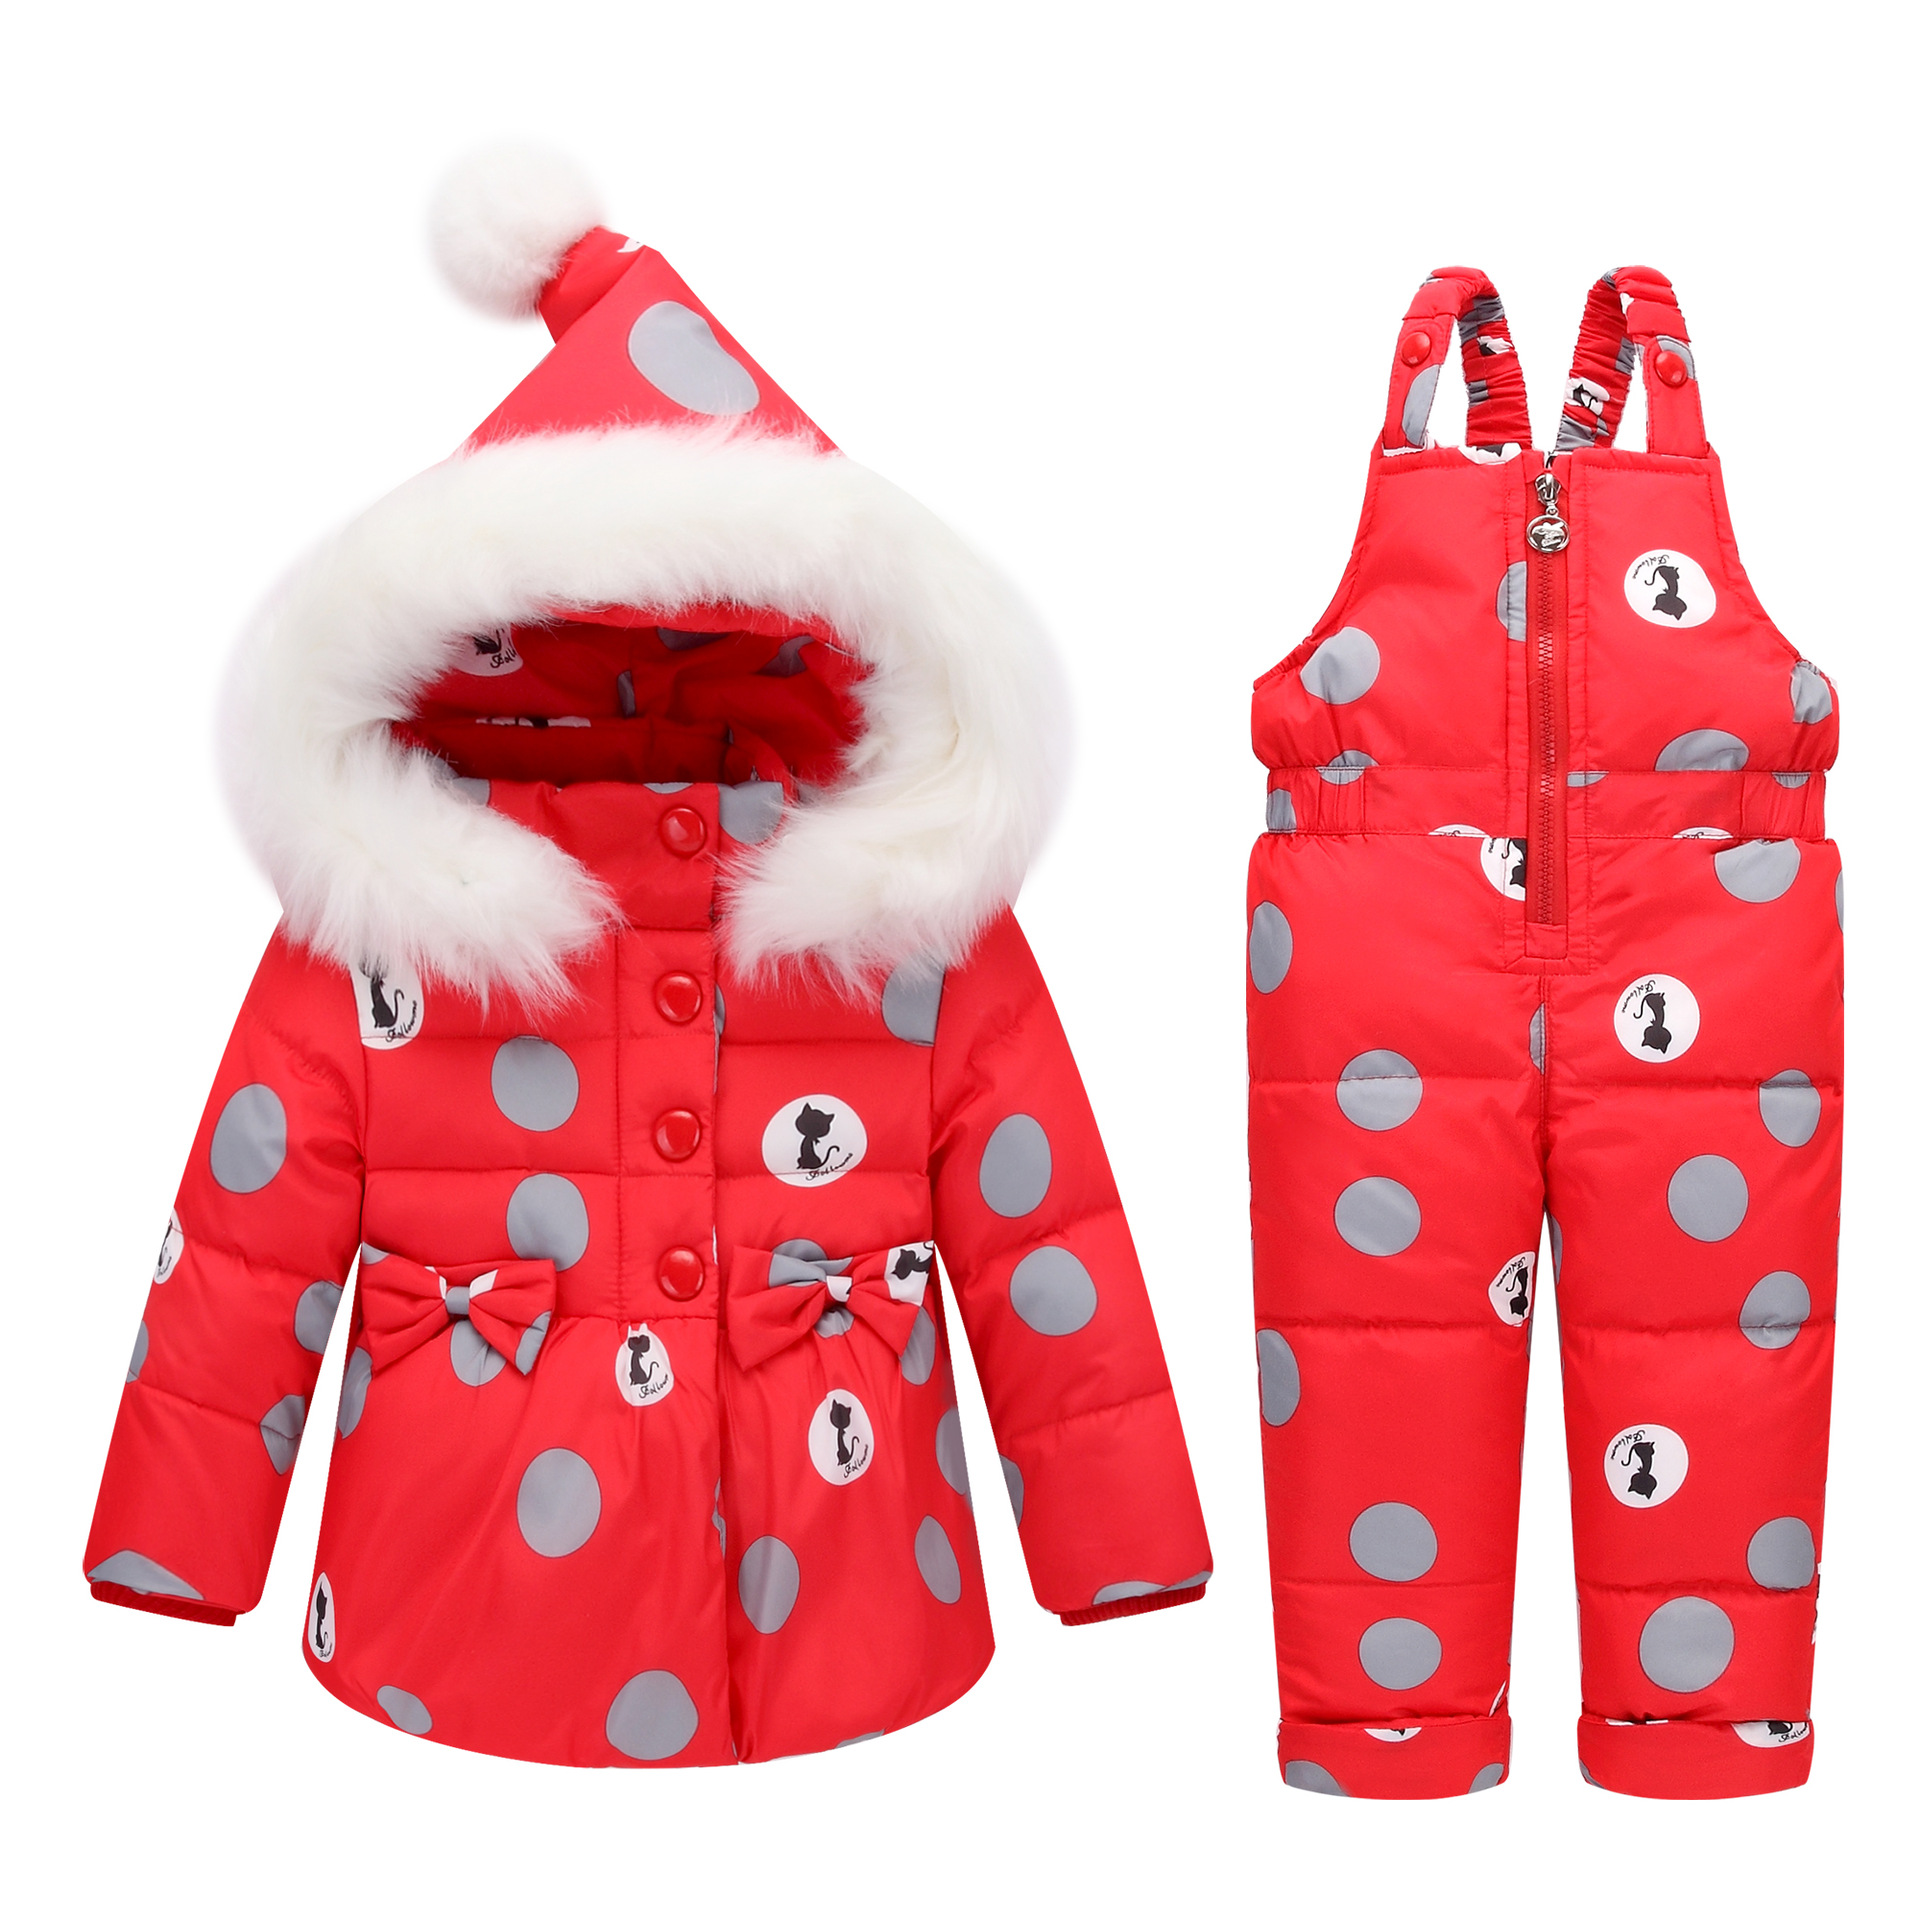 Children Clothing Sets Girls Winter Hooded Duck Down Jacket + Trousers Waterproof Snowsuit Warm Kids Baby Clothes 2016 winter boys ski suit set children s snowsuit for baby girl snow overalls ntural fur down jackets trousers clothing sets